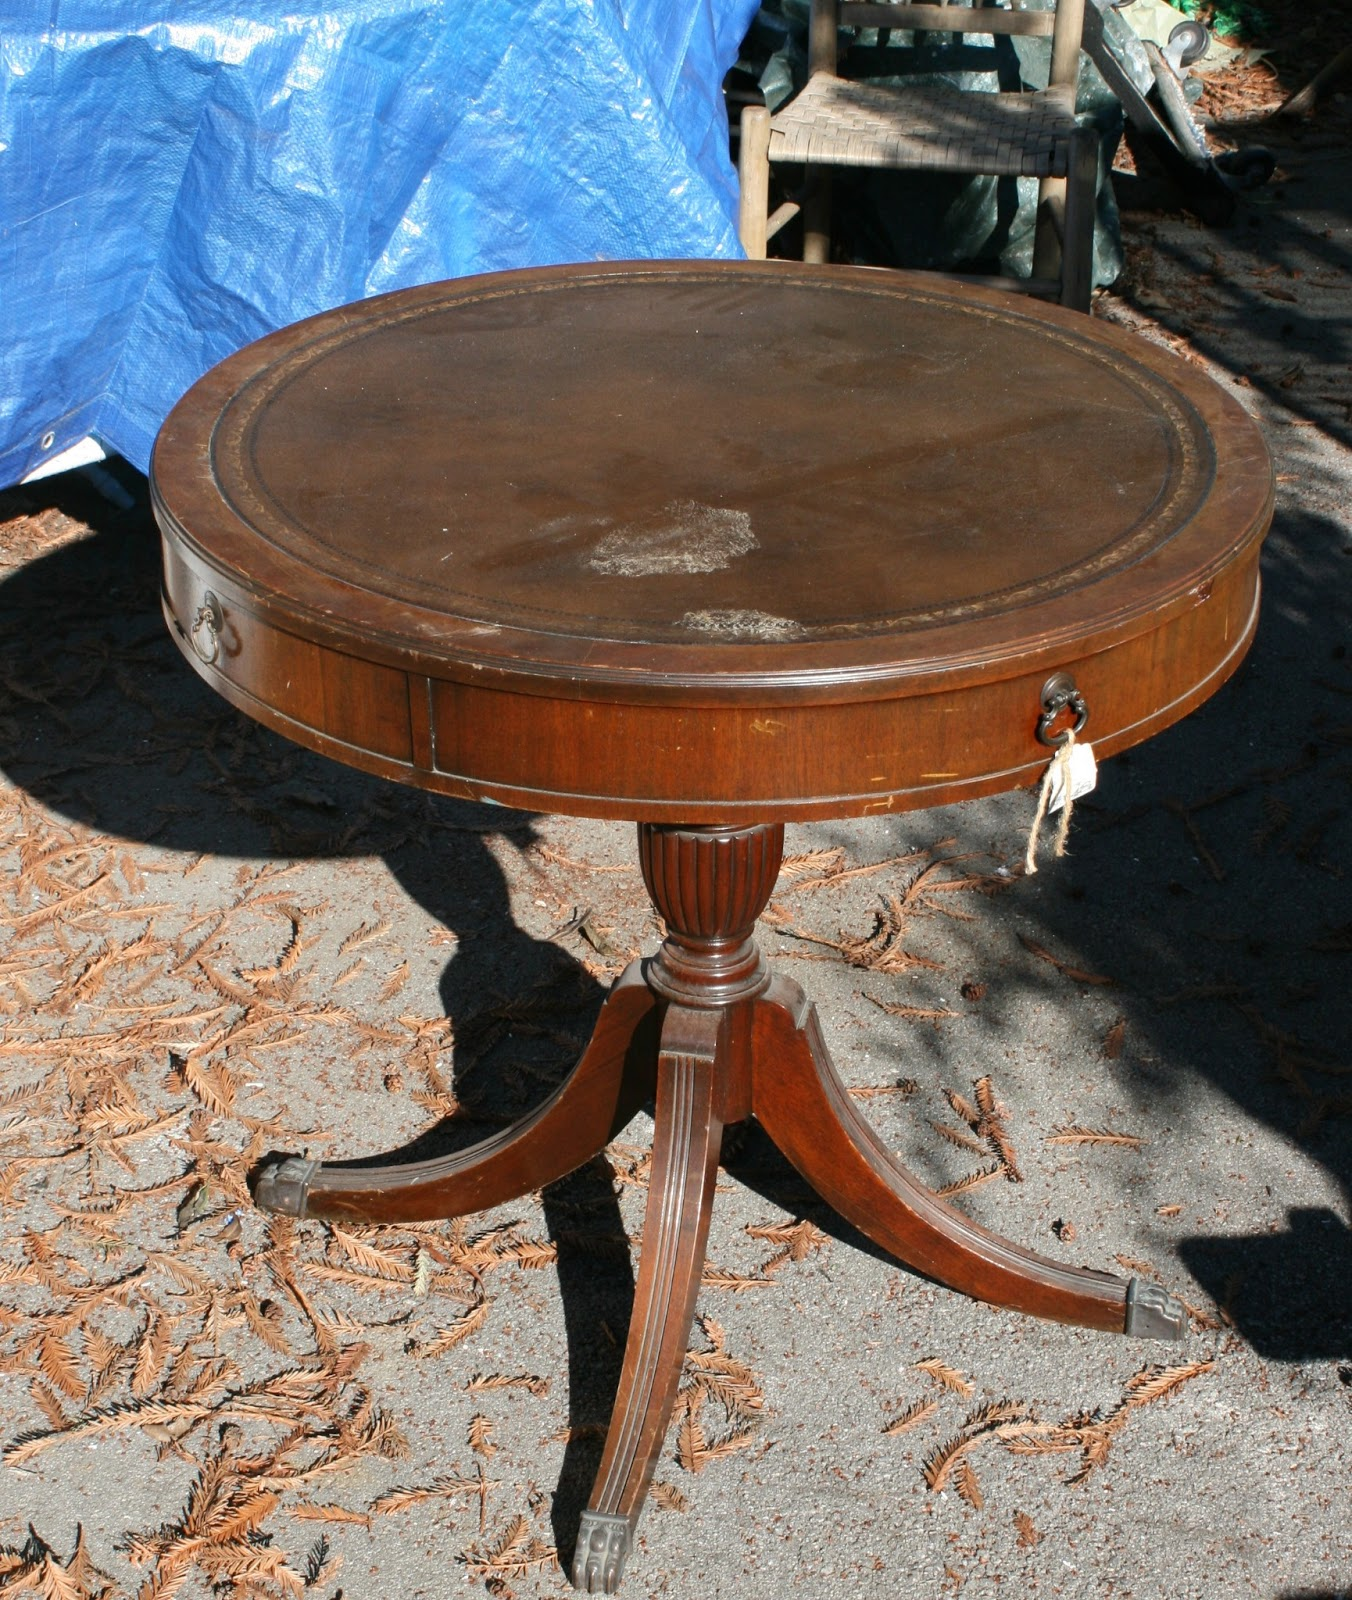 Antique Round Table With Leather Top Round Designs